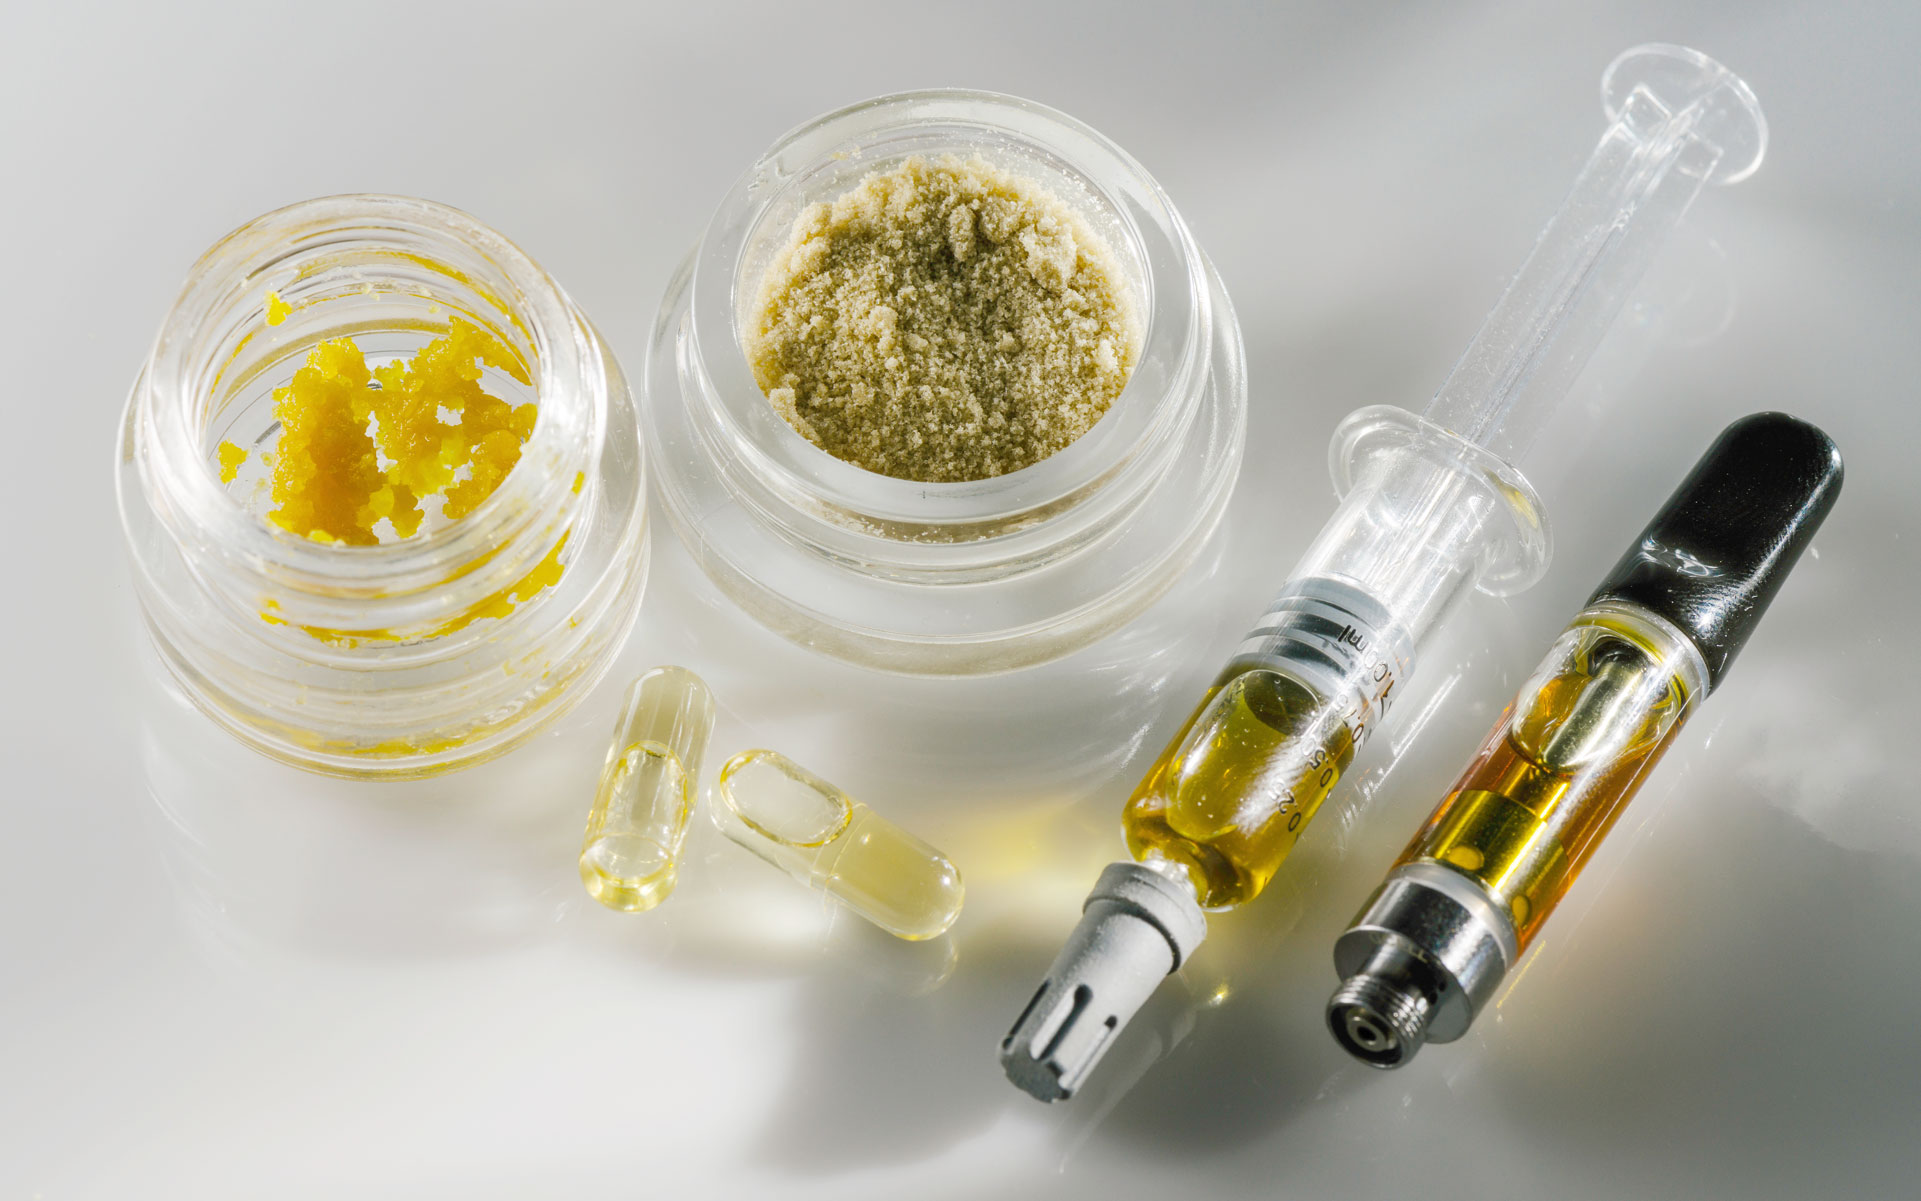 A variety of different cannabis concentrate types on a white background.